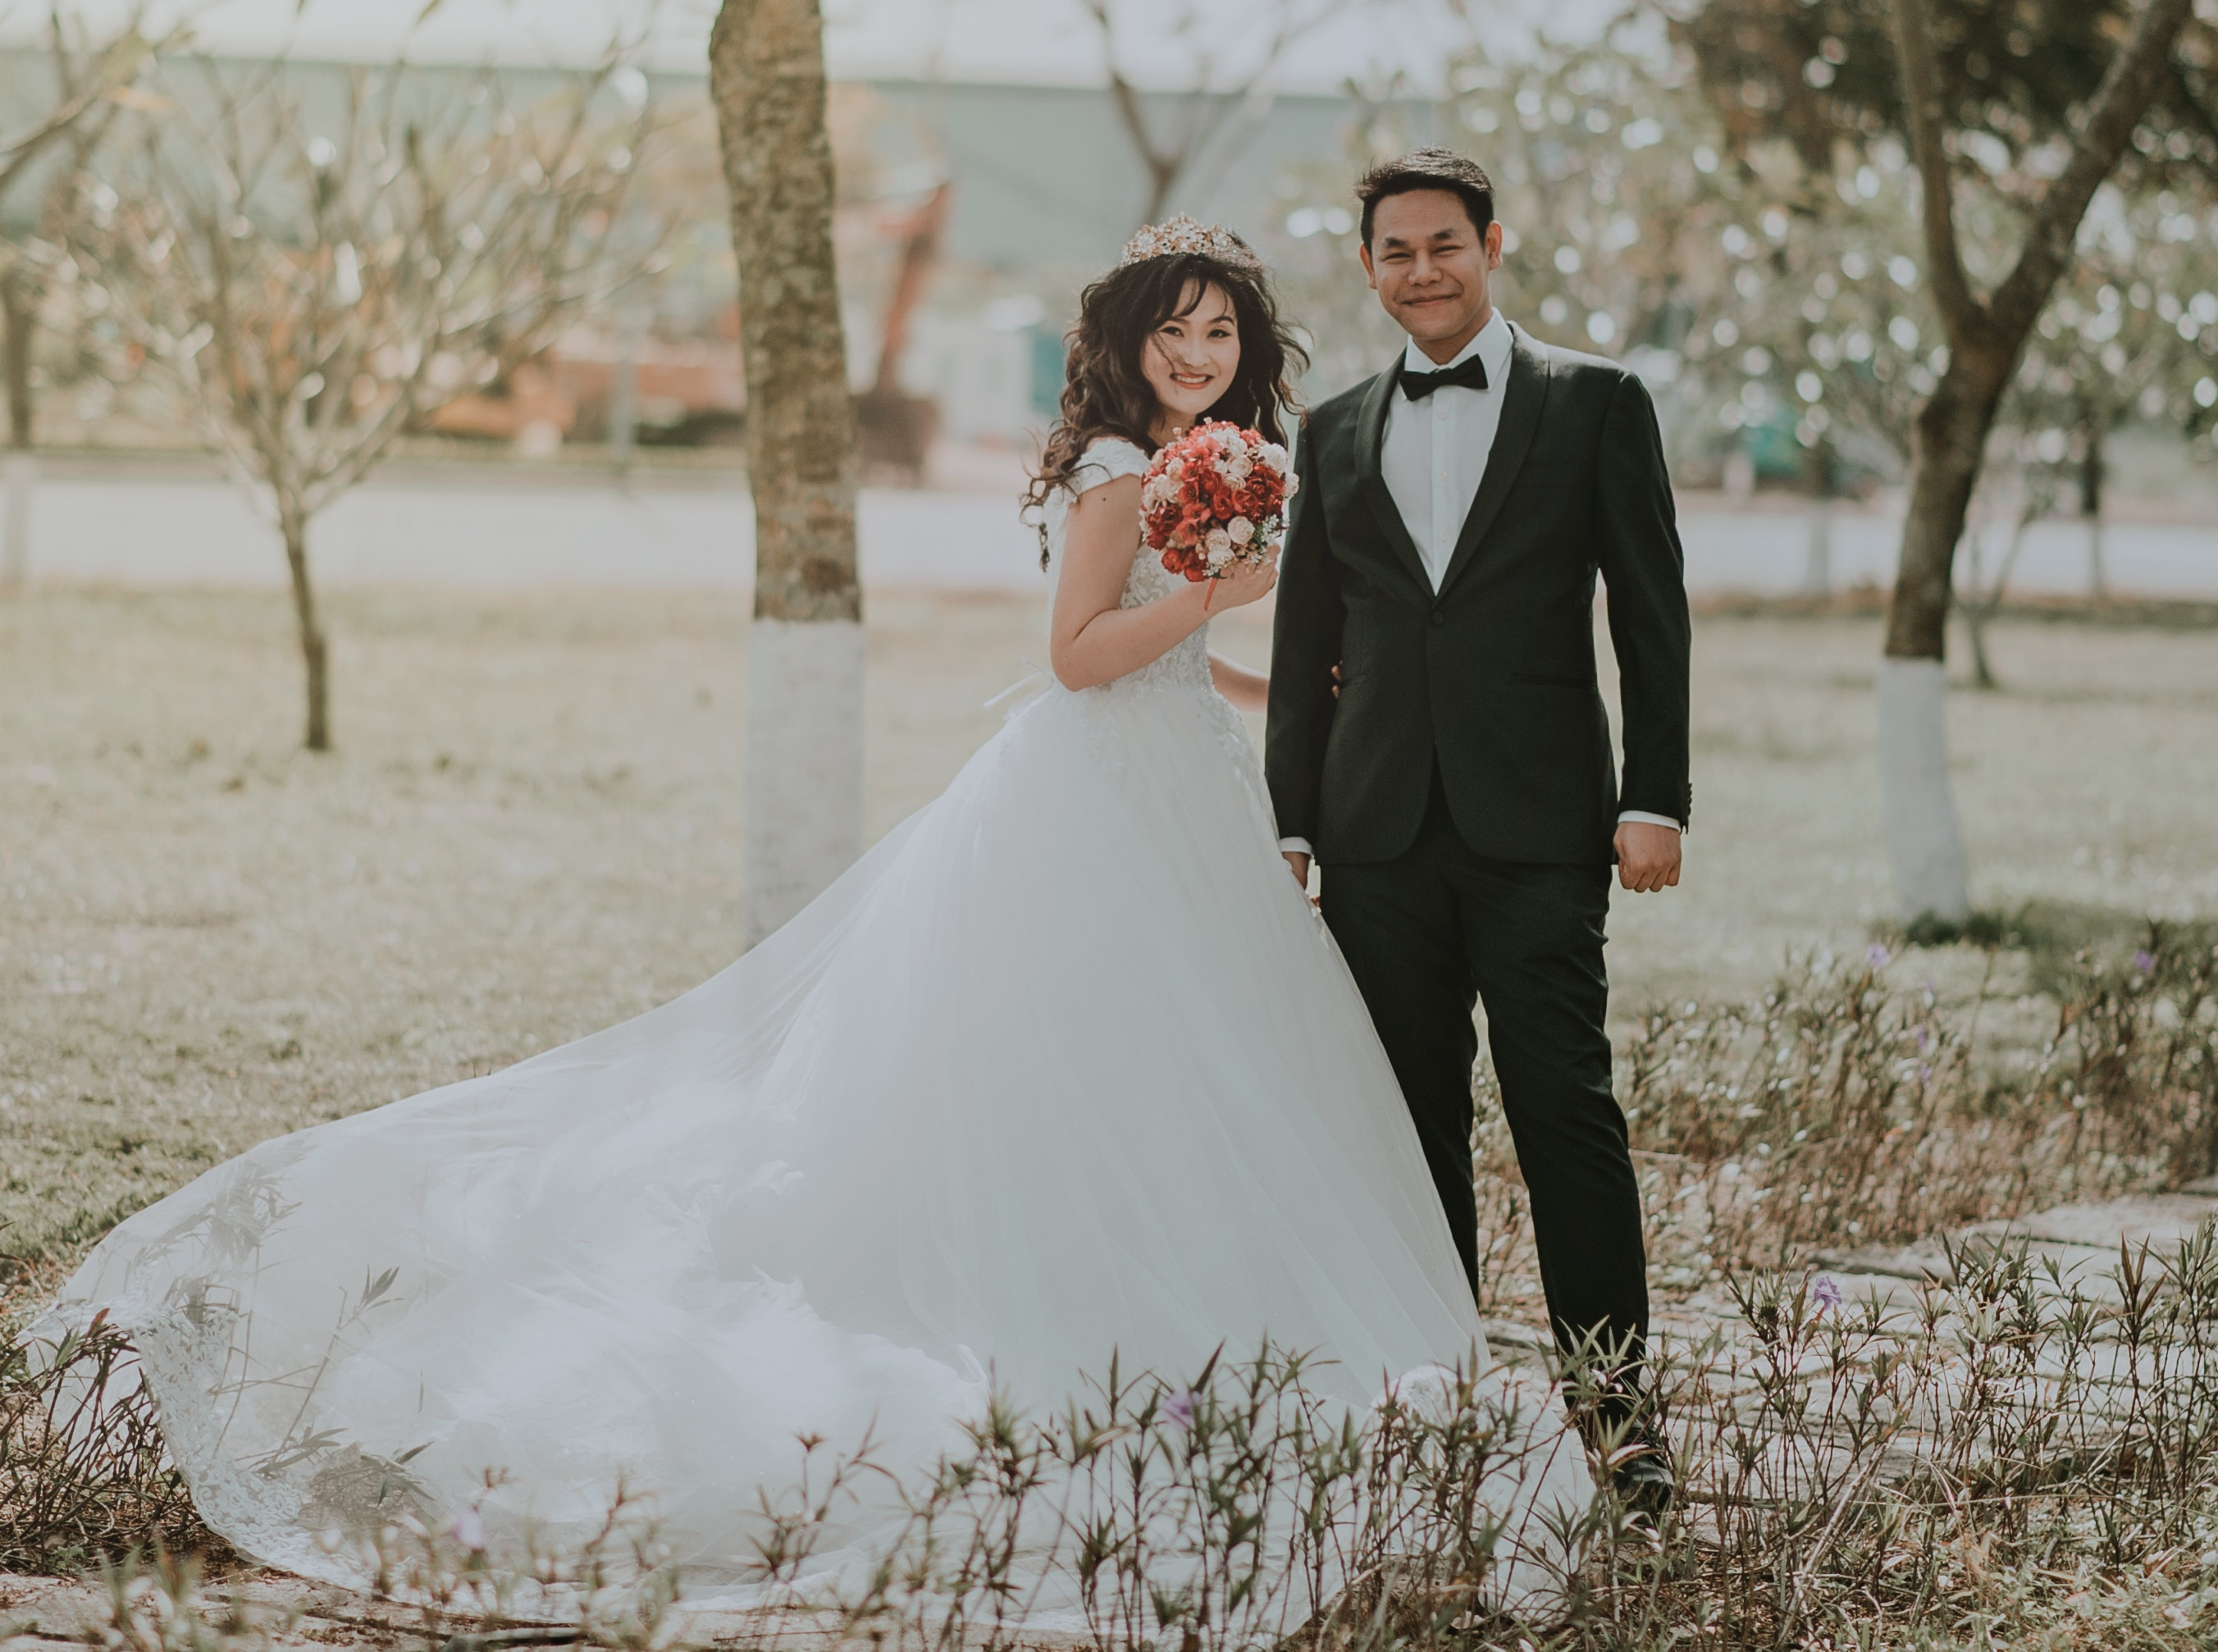 Woman Wearing White Wedding Ball Beside Man Wearing Black Notch-lapel Suit on Pathway Near the Green Grass Field, Adult, Park, People, Photoshoot, HQ Photo